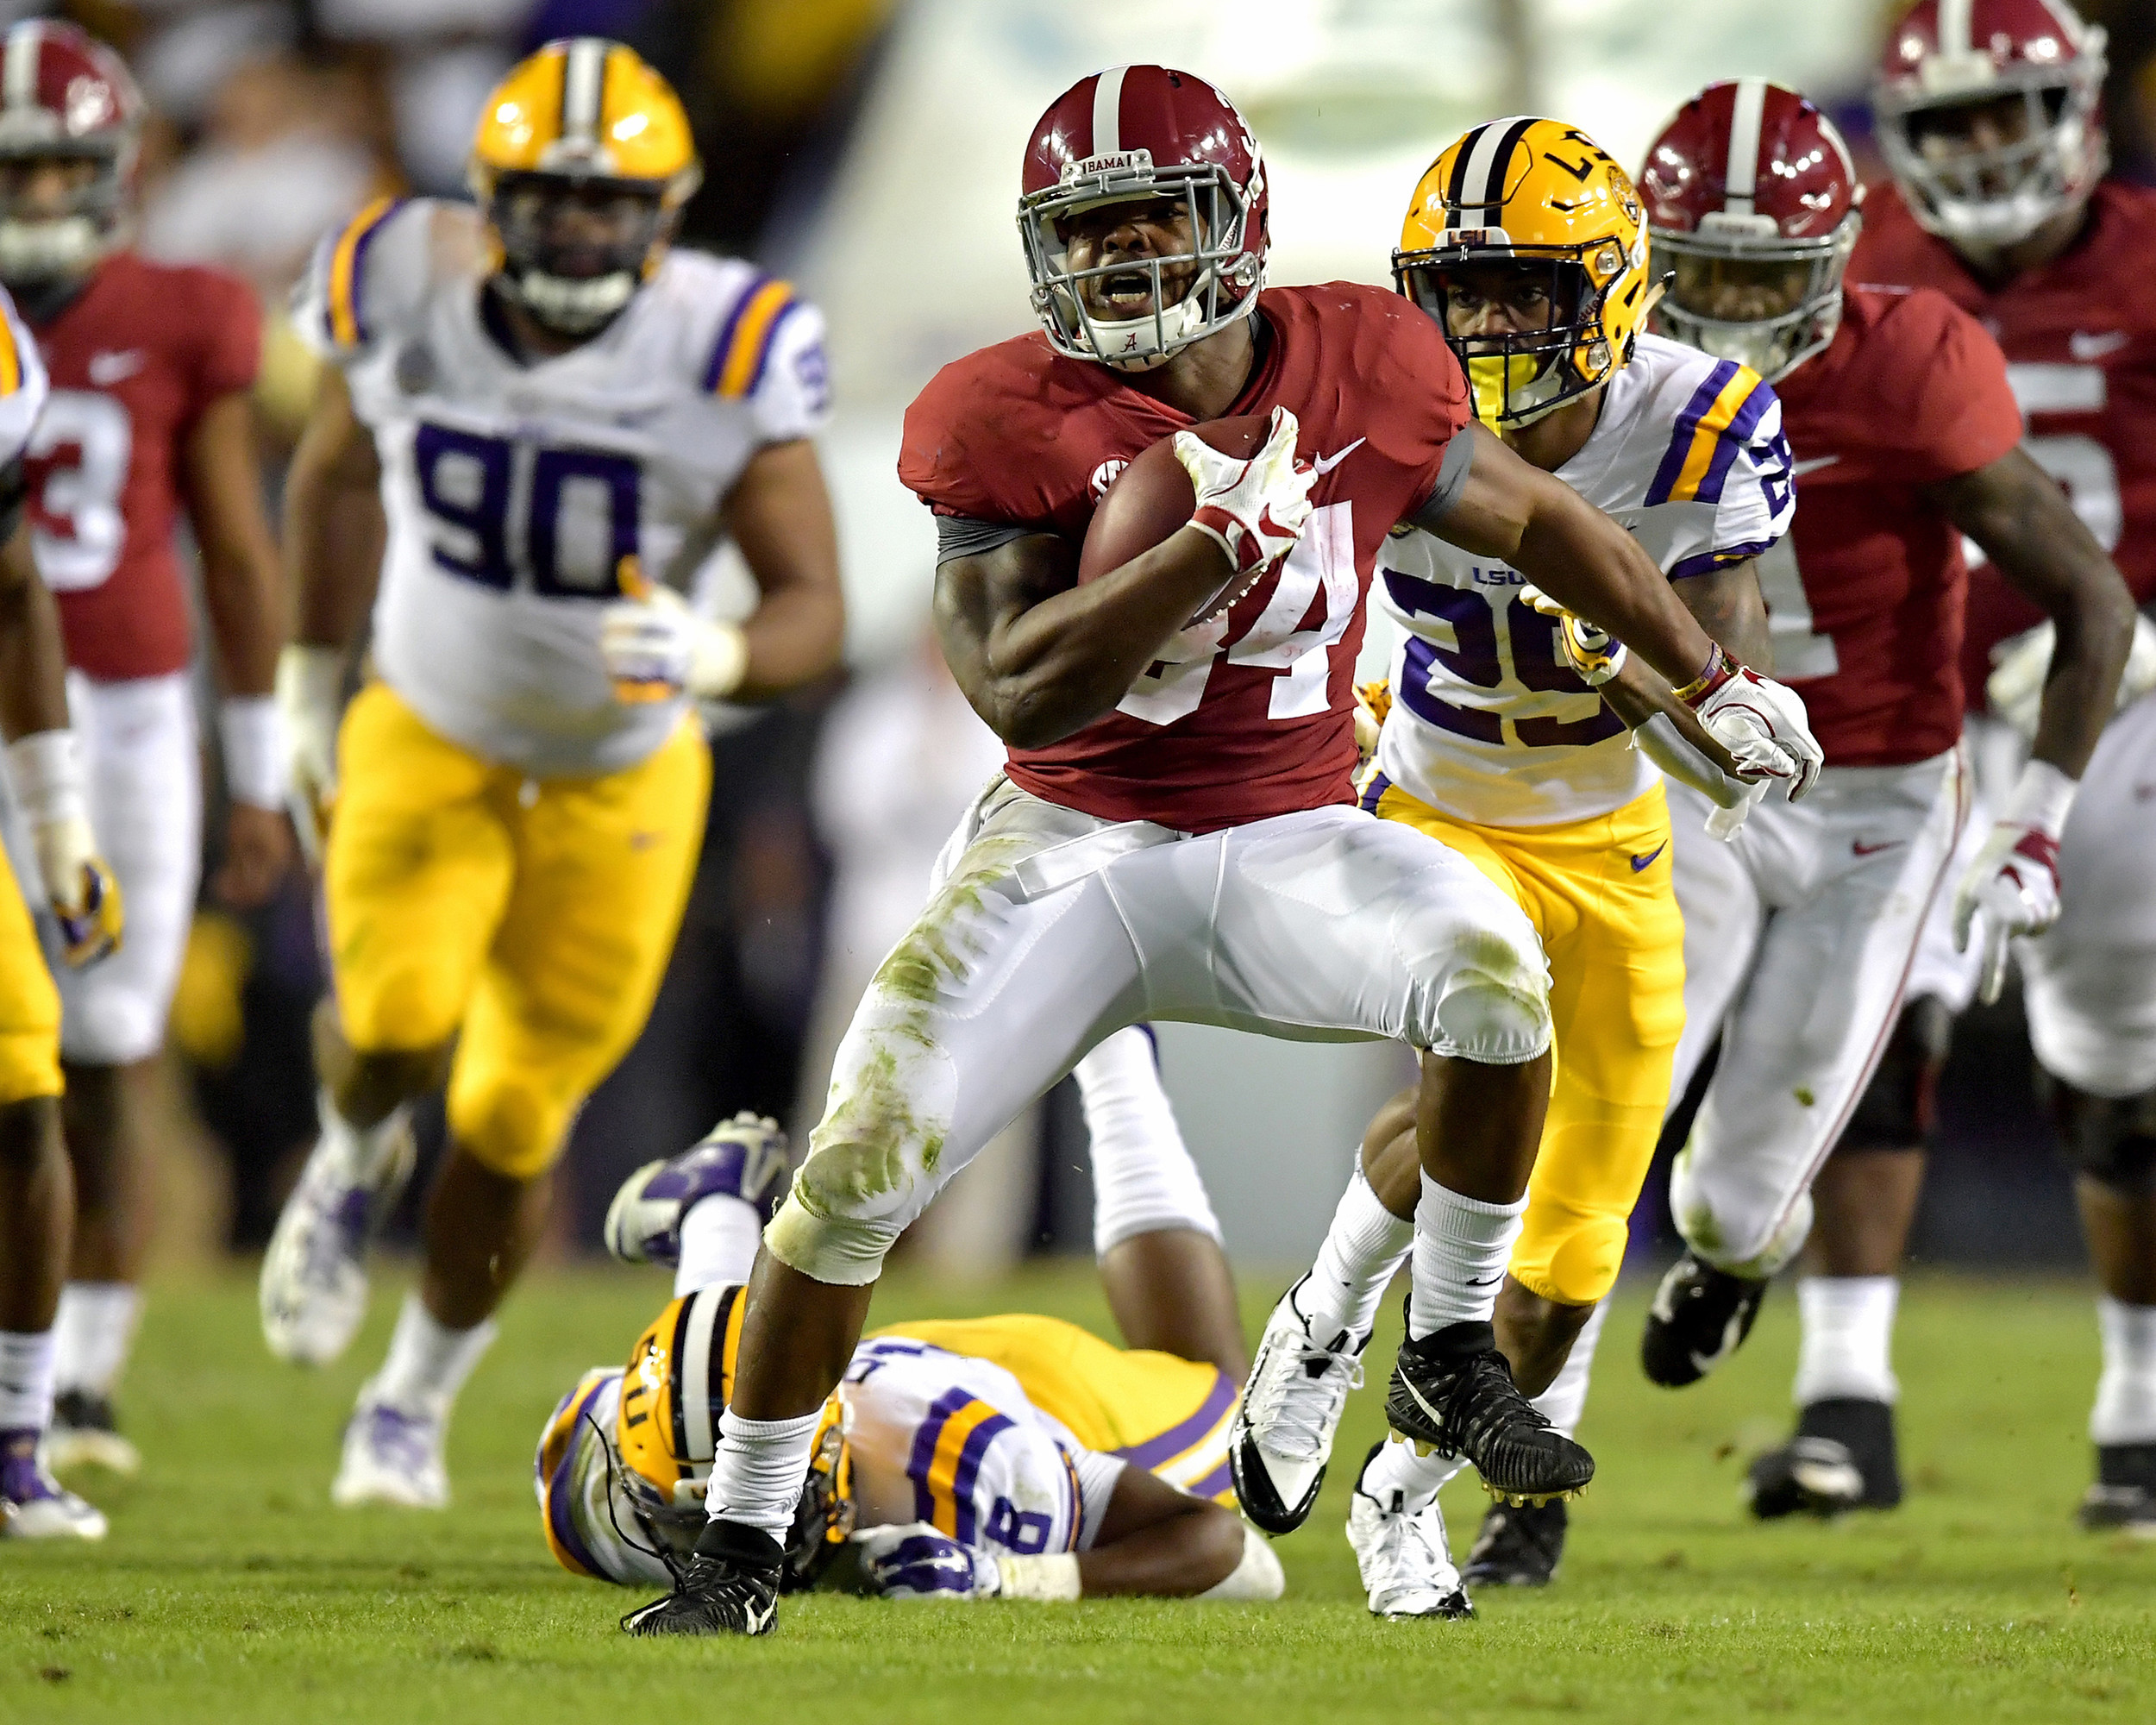 Alabama Crimson Tide running back Damien Harris (34) outruns LSU Tigers linebacker Patrick Queen (8) in the first quarter of an NCAA football game Saturday, November 3, 2018, at Tiger Stadium in Baton Rouge, La. Alabama wins 29-0. (Photo by Lee Walls)